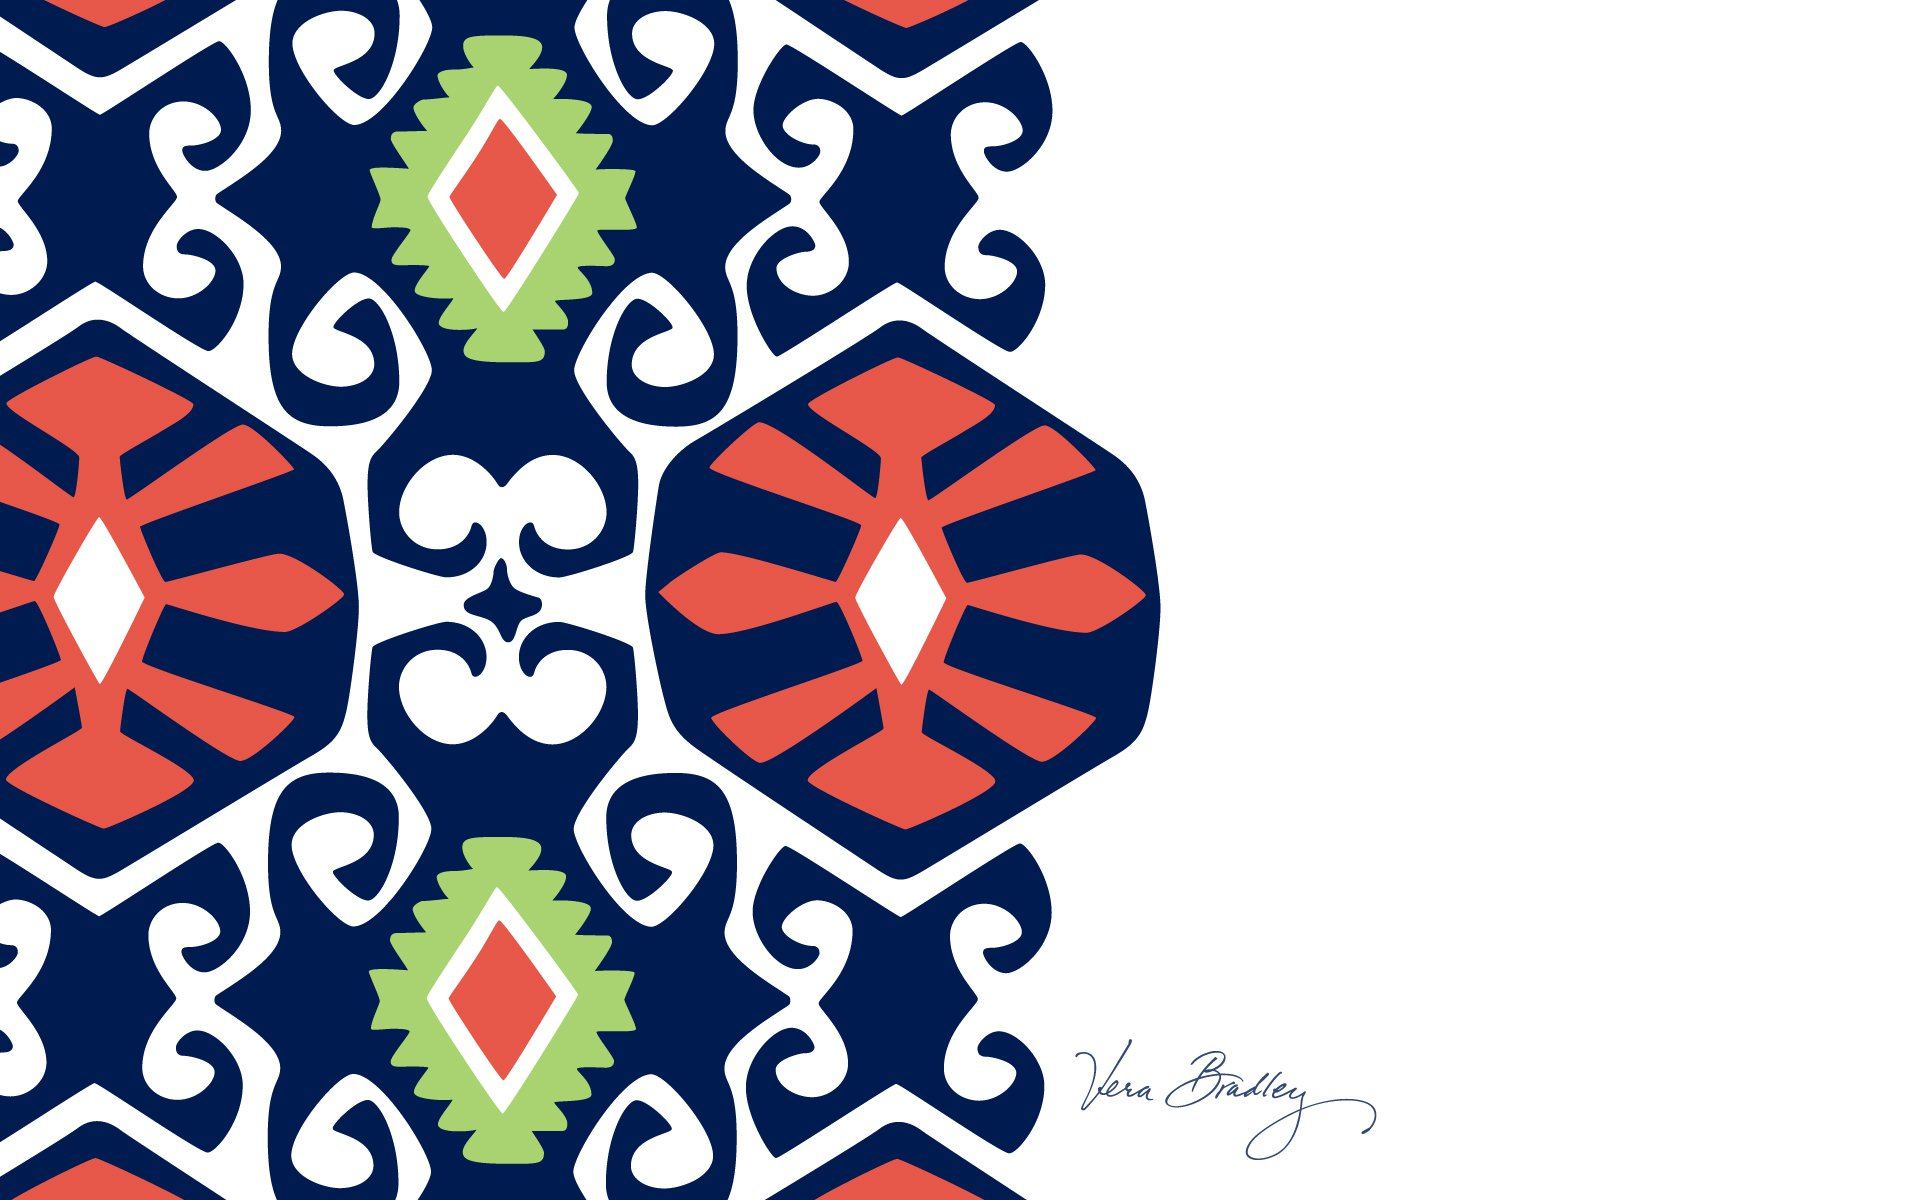 1920x1200px Vera Bradley Wallpaper Backgrounds Wallpapersafari